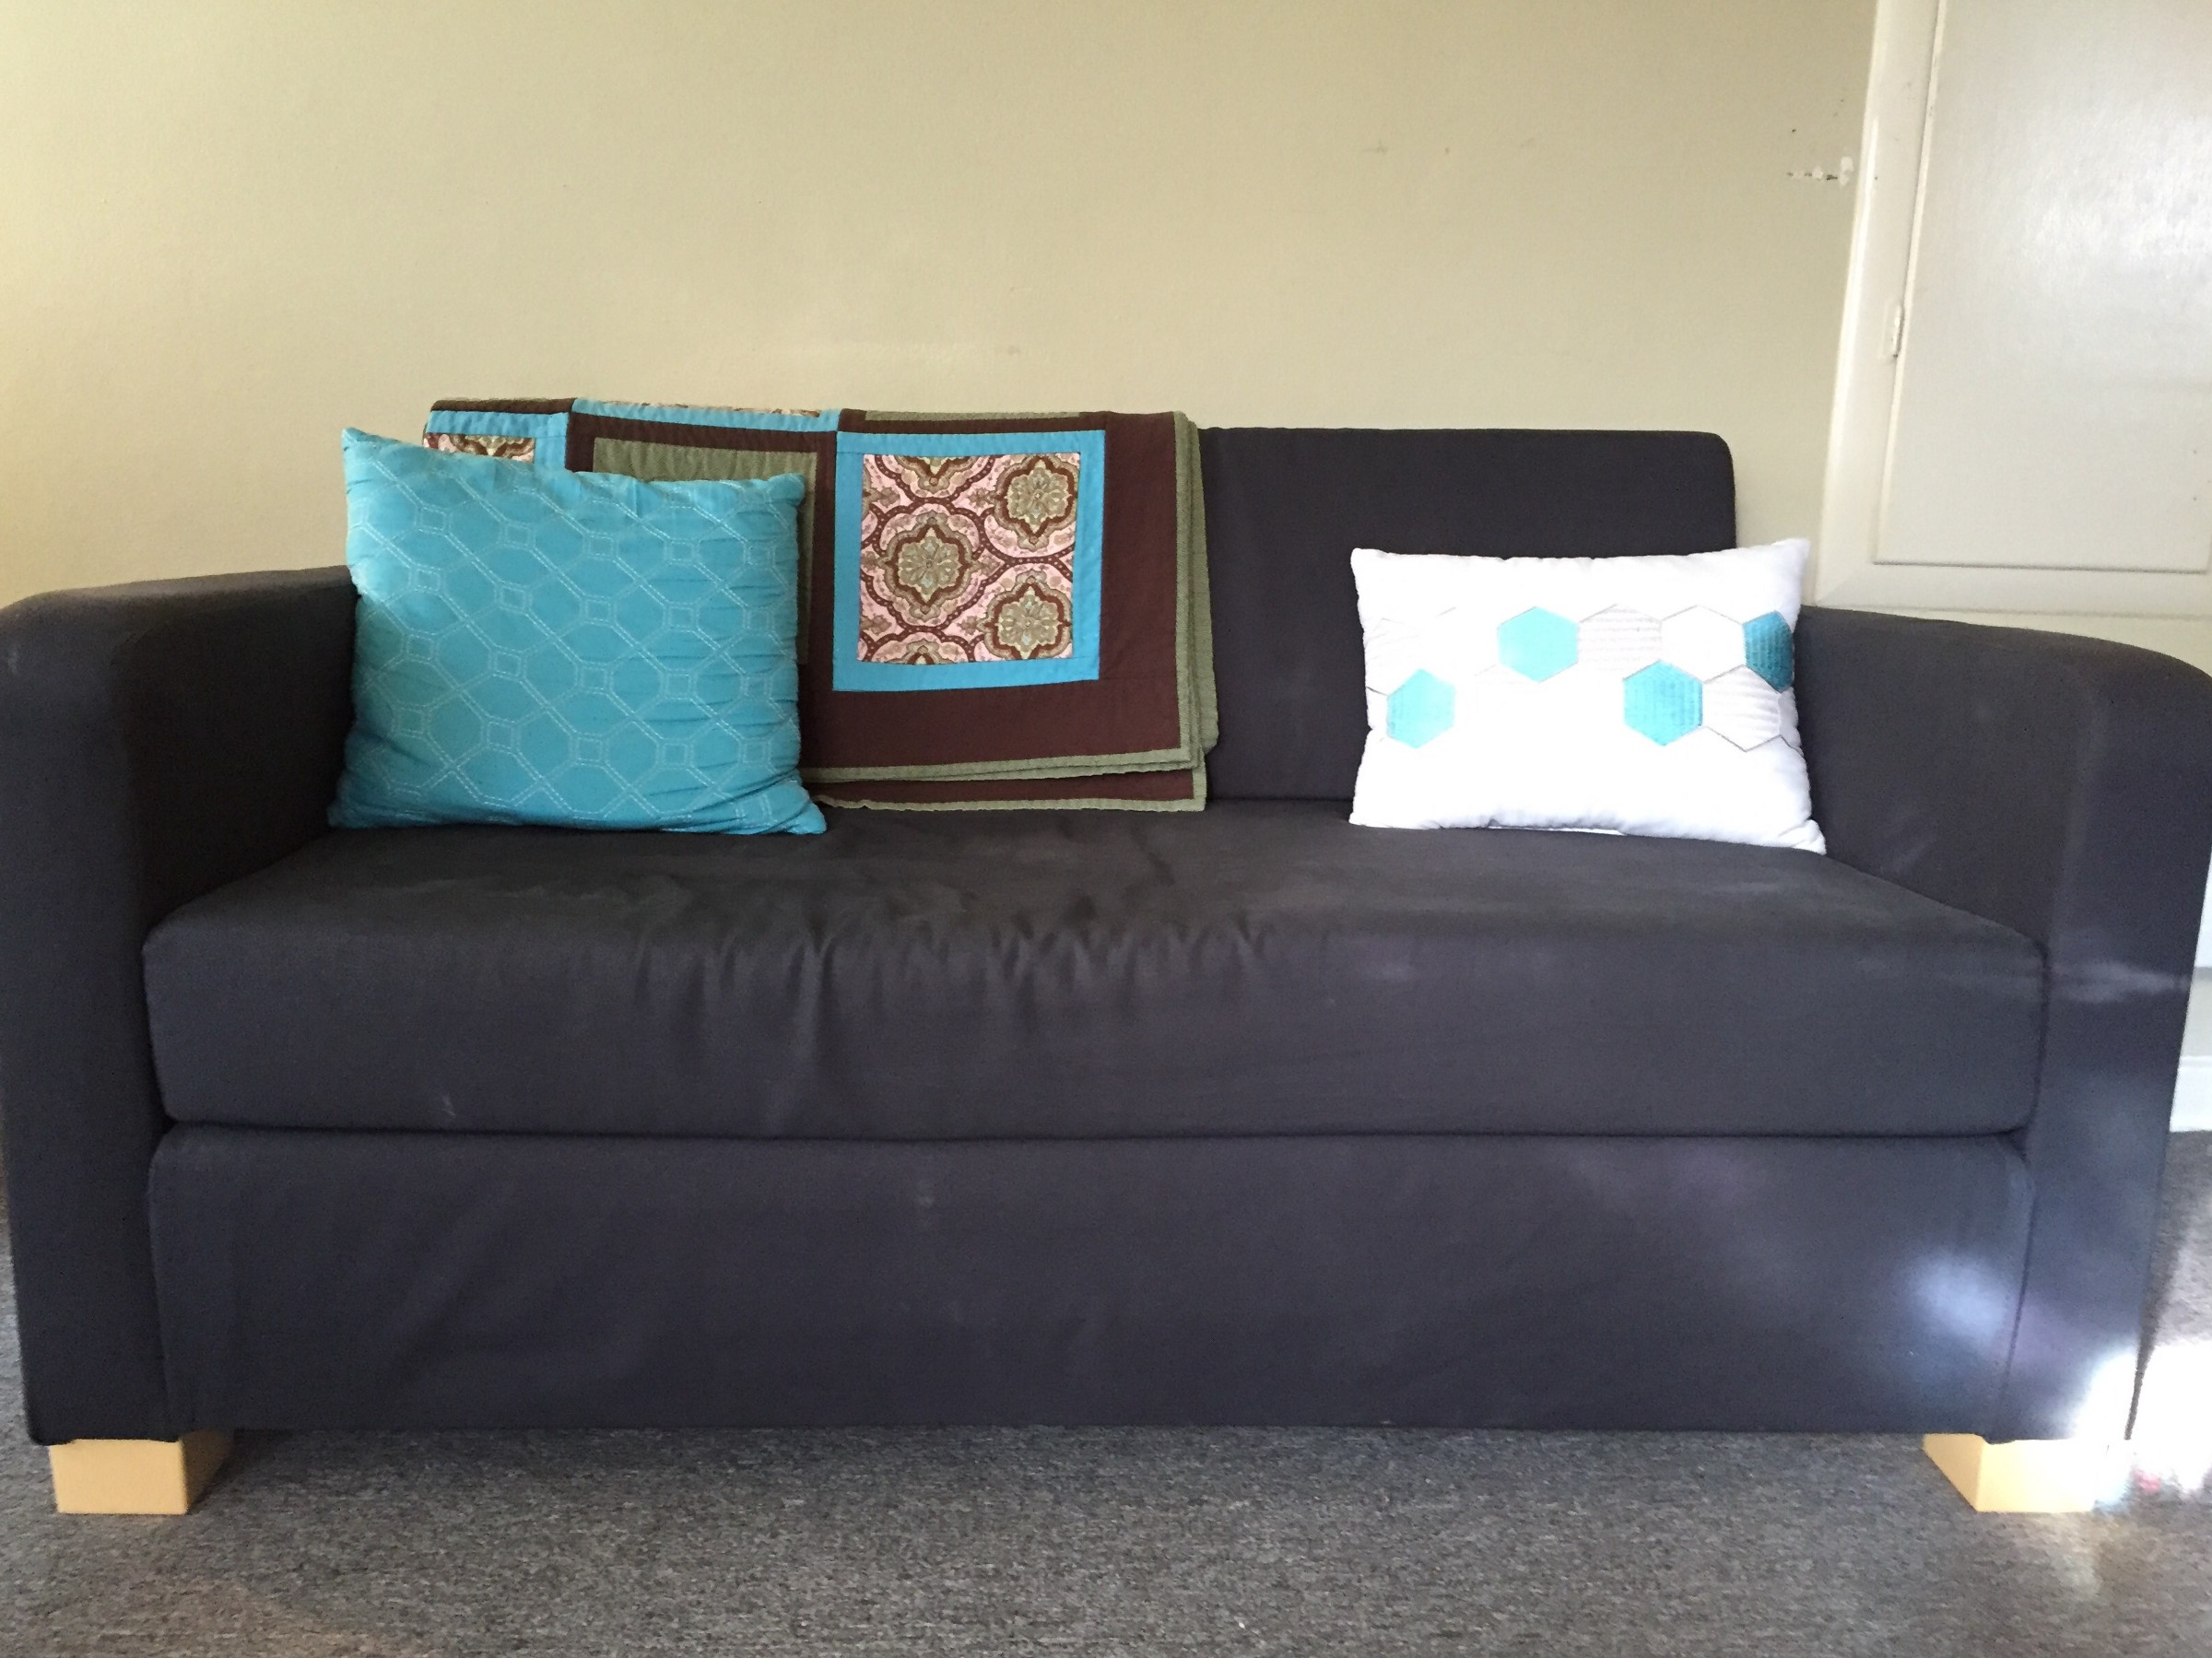 Bettsofa Ikea One Year With Ikea S Second Cheapest Sleeper Sofa The Billfold